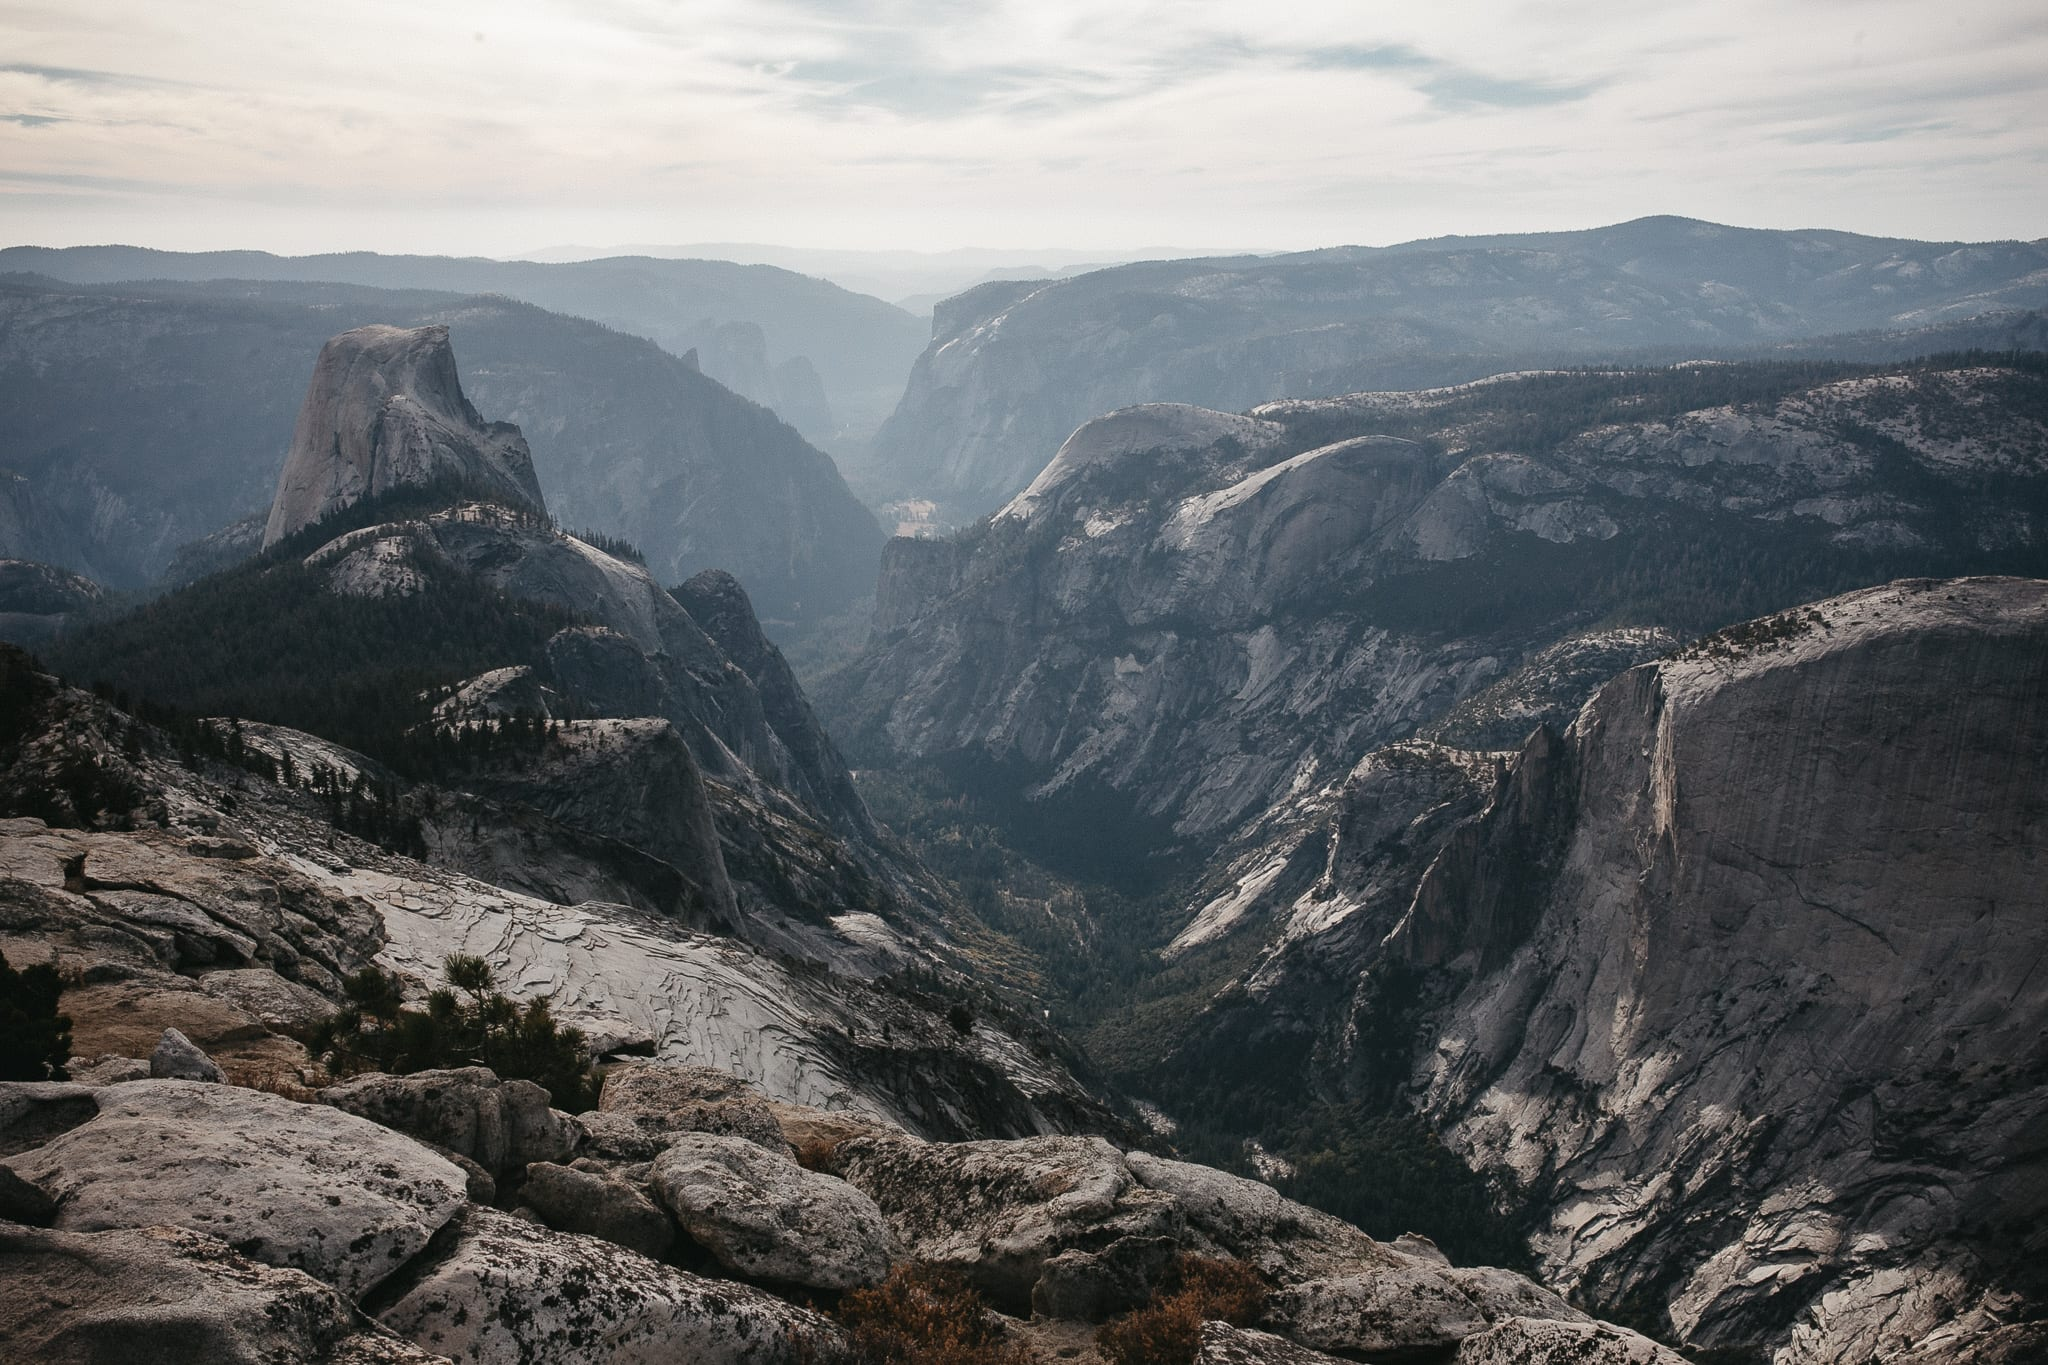 clouds-rest-yosemite-california-engagement-lifestyle-adventure-photographer-28